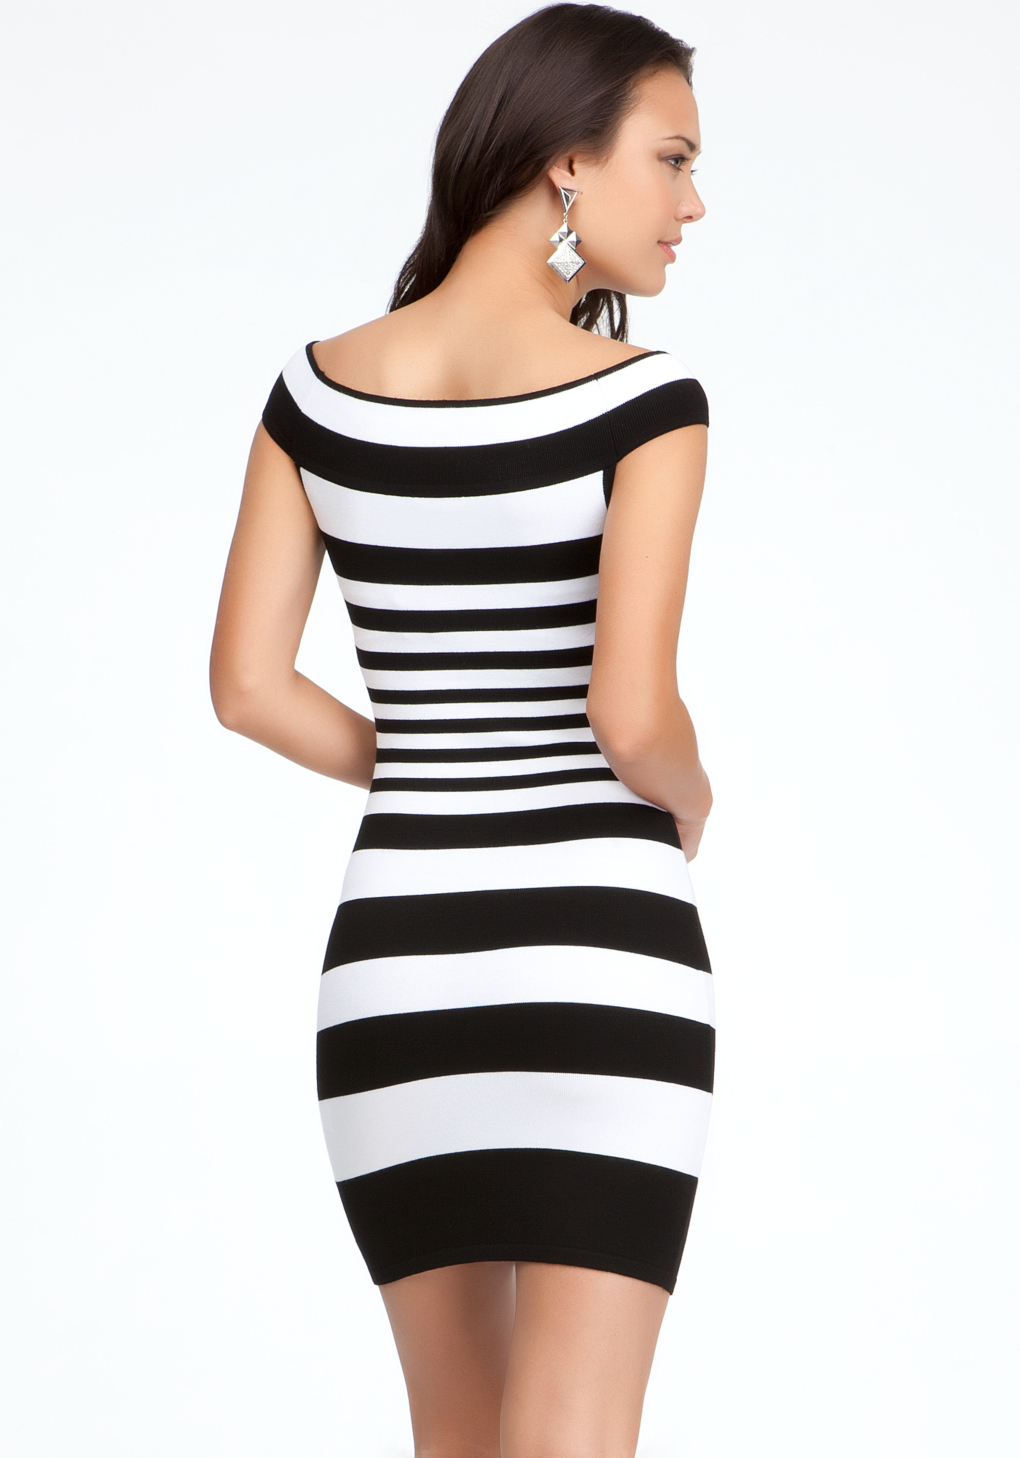 The dress express - Womens Formal Casual Dresses At Target Au